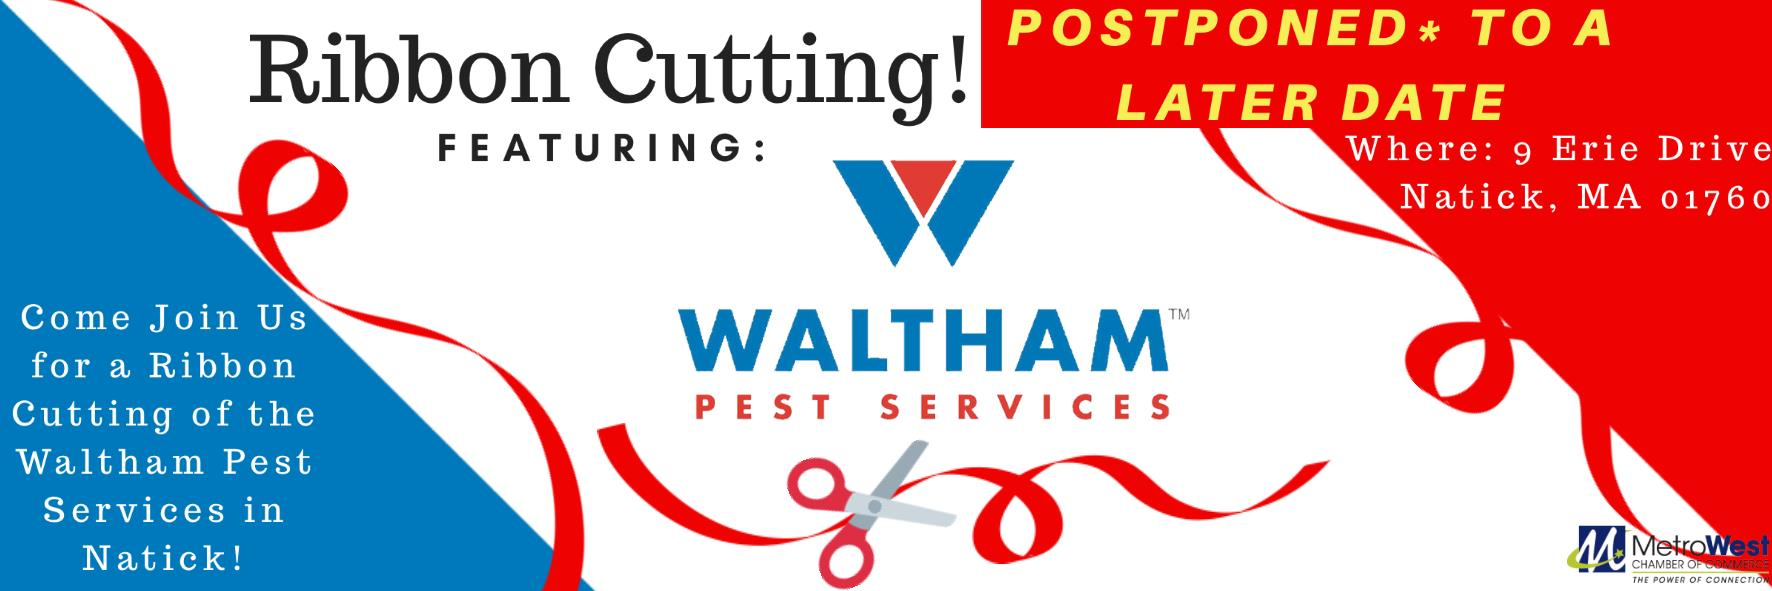 Ribbon-Cutting---Waltham-Pest-Services-Banner-(PP).jpeg